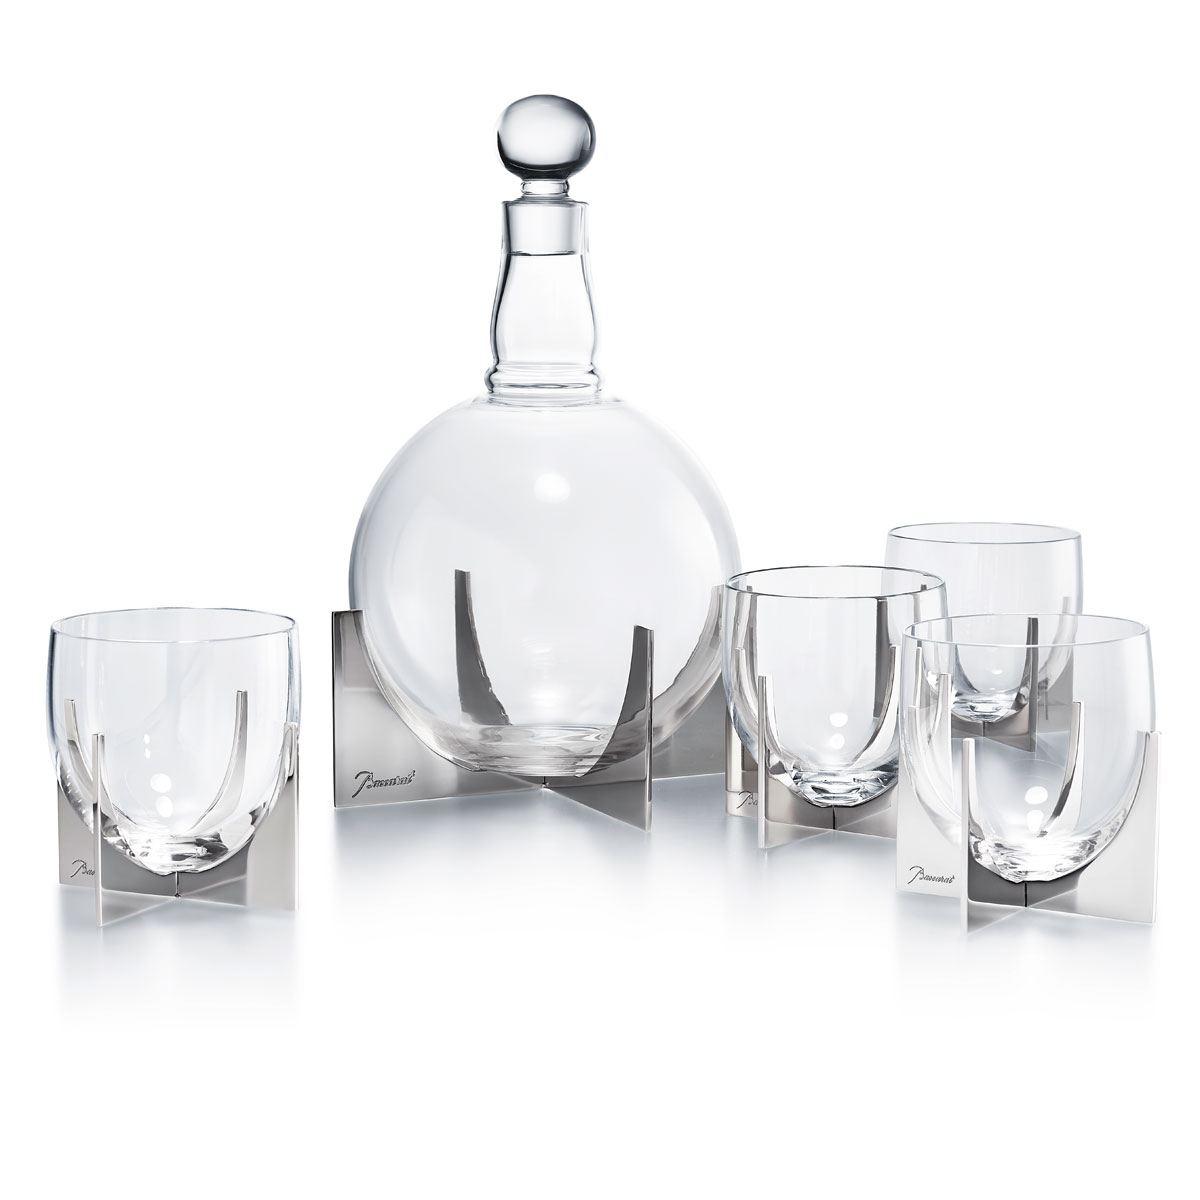 Baccarat Crystal Heritage Paraison Set Decanter and 4 Tumblers